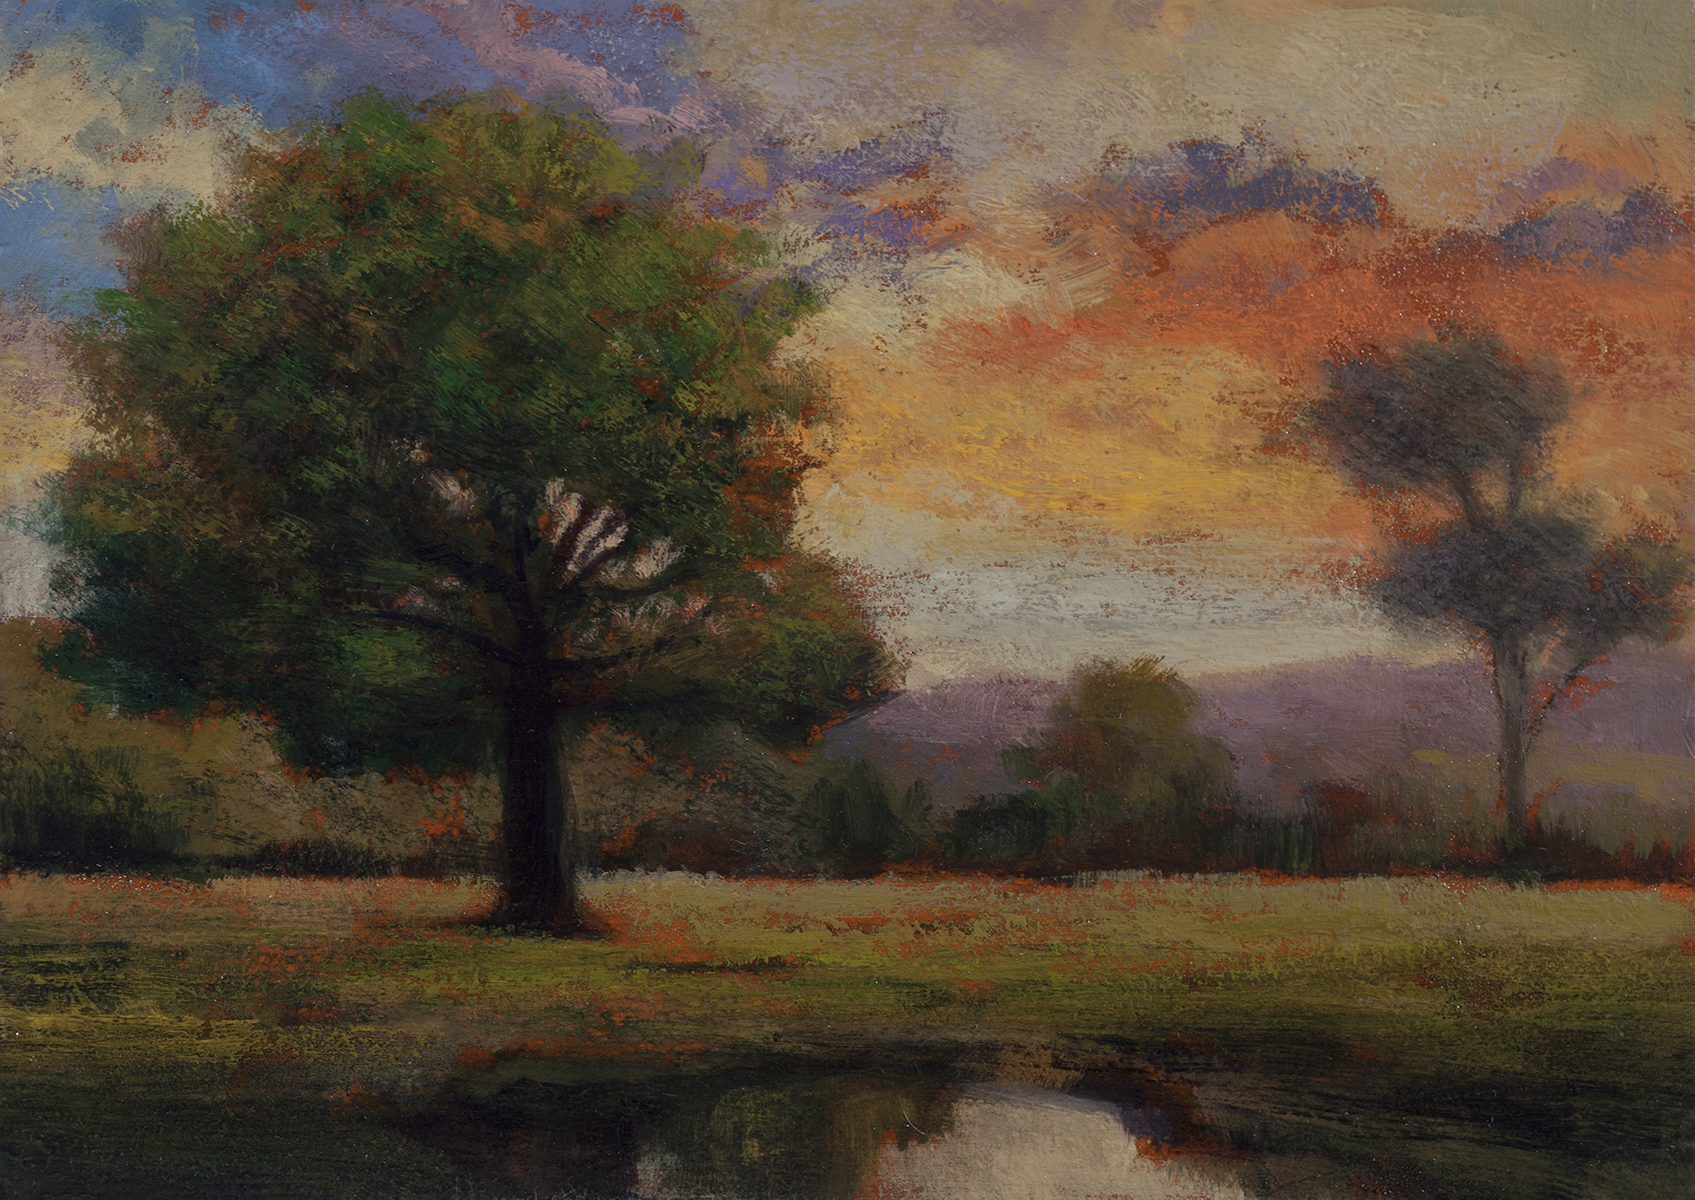 Waning Day by M Francis McCarthy - 5x7 Oil on Wood Panel